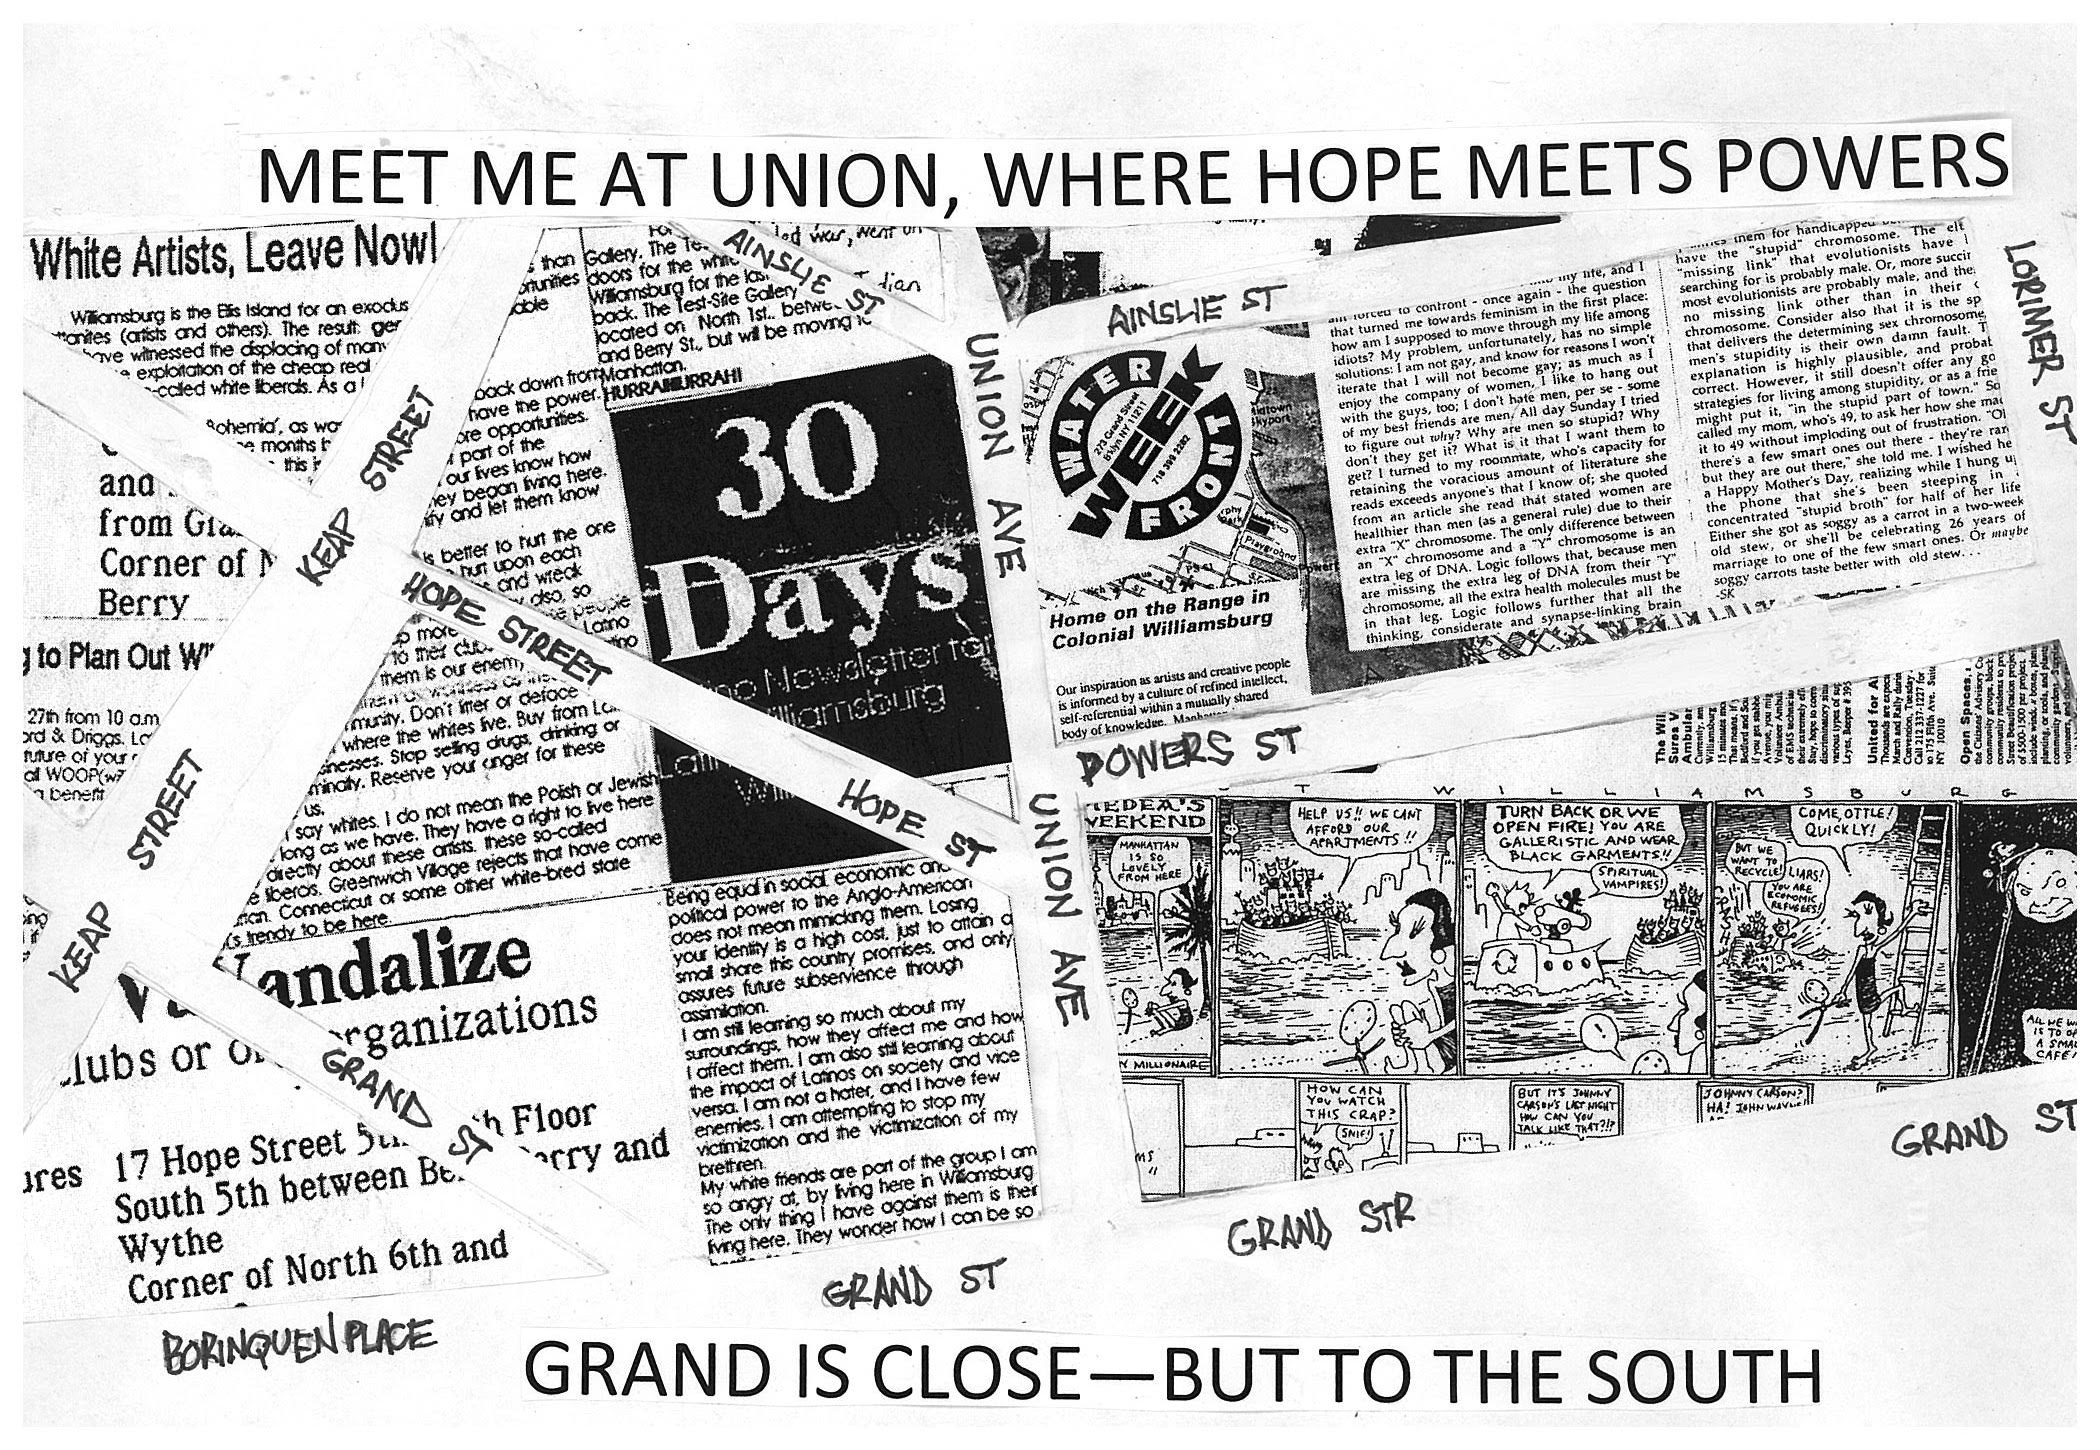 Meet Me at Union, Where Hope Meets Powers—Grand is Close